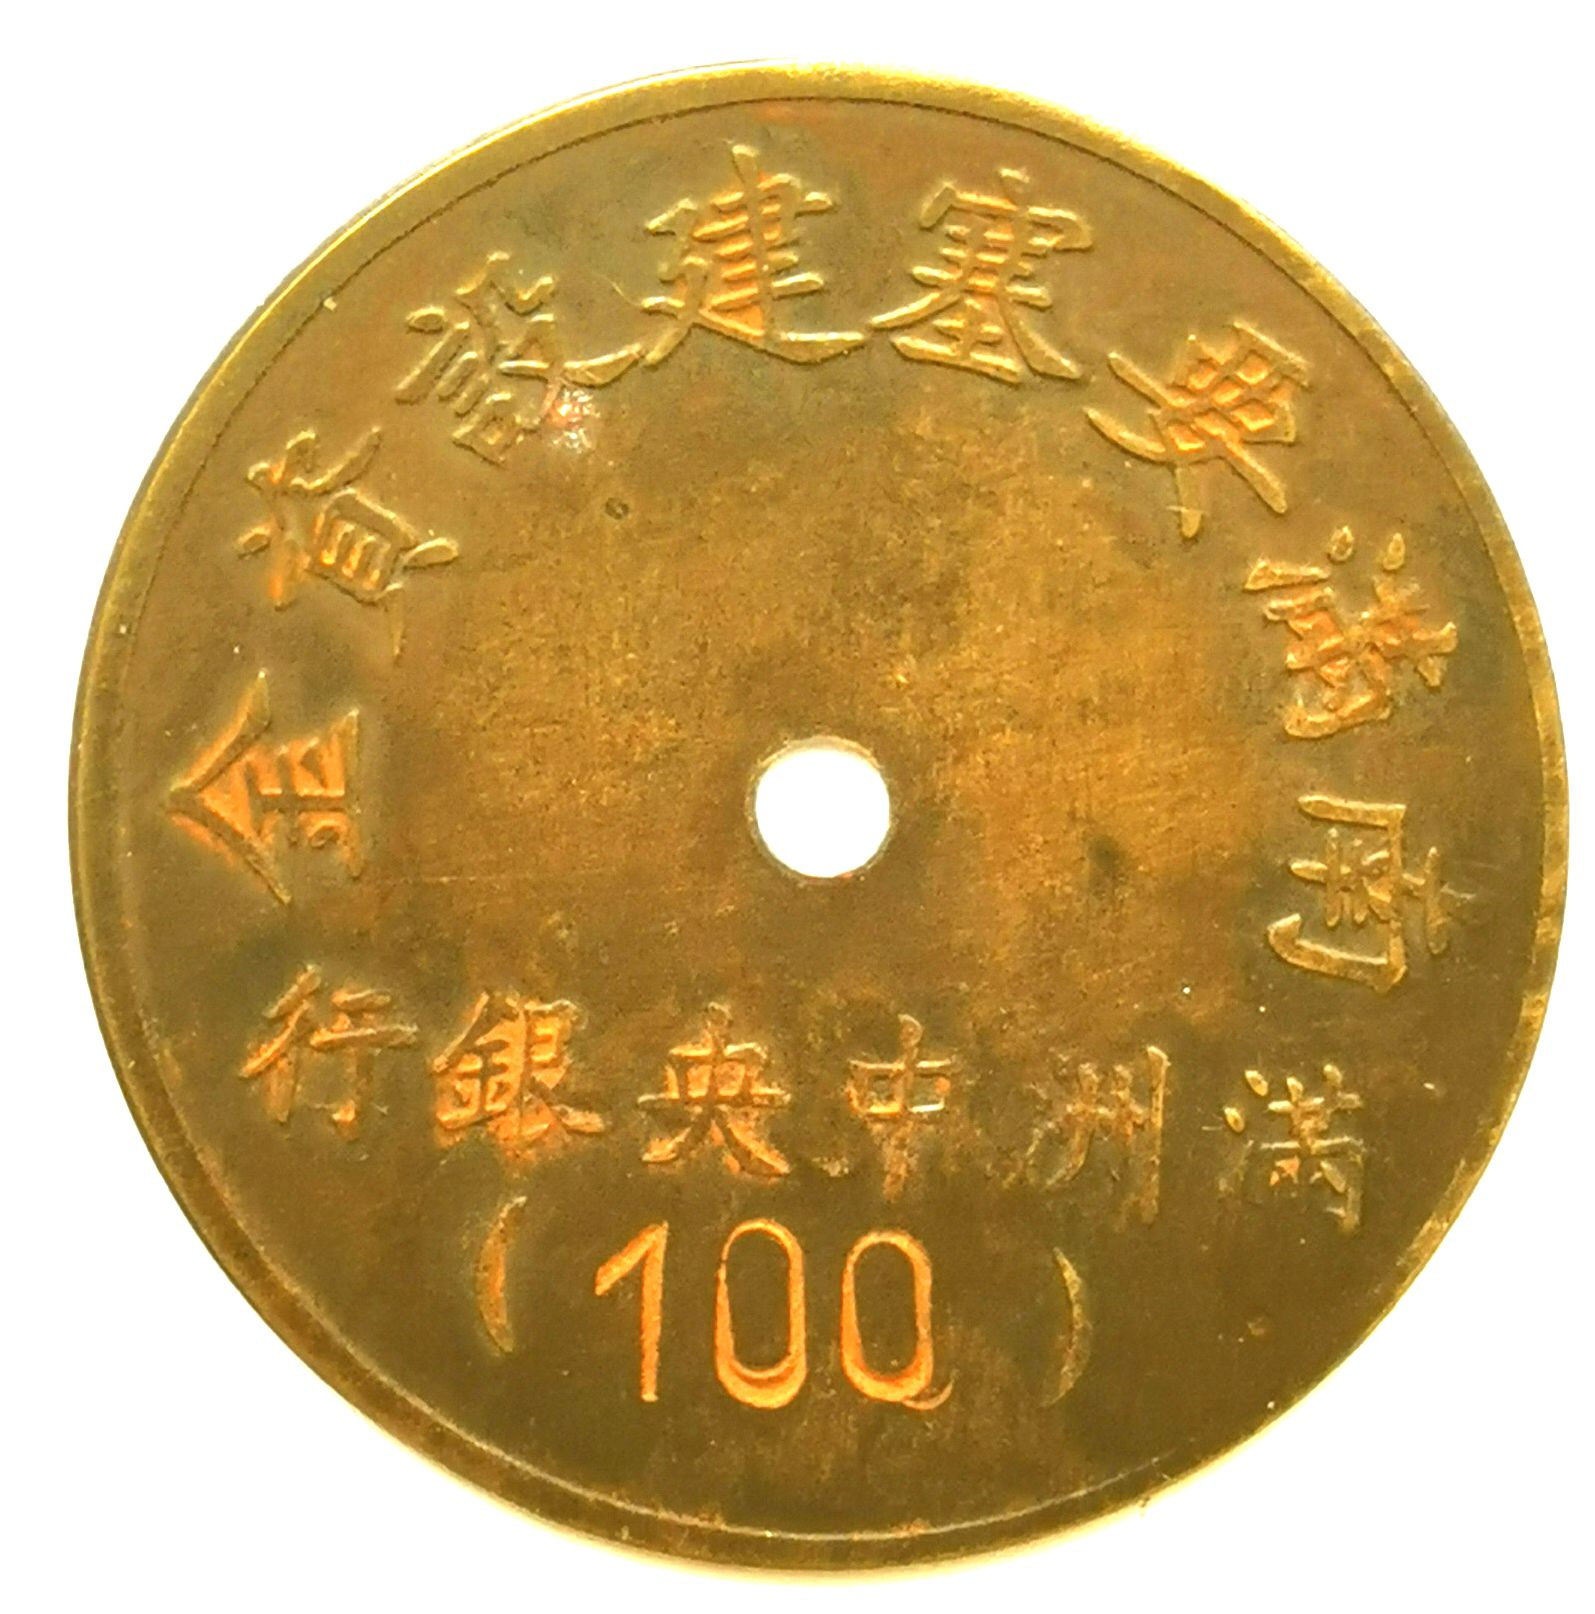 BT548, South Manchukuo Fortresses Construction Fund, 100 Yen Token, 1944